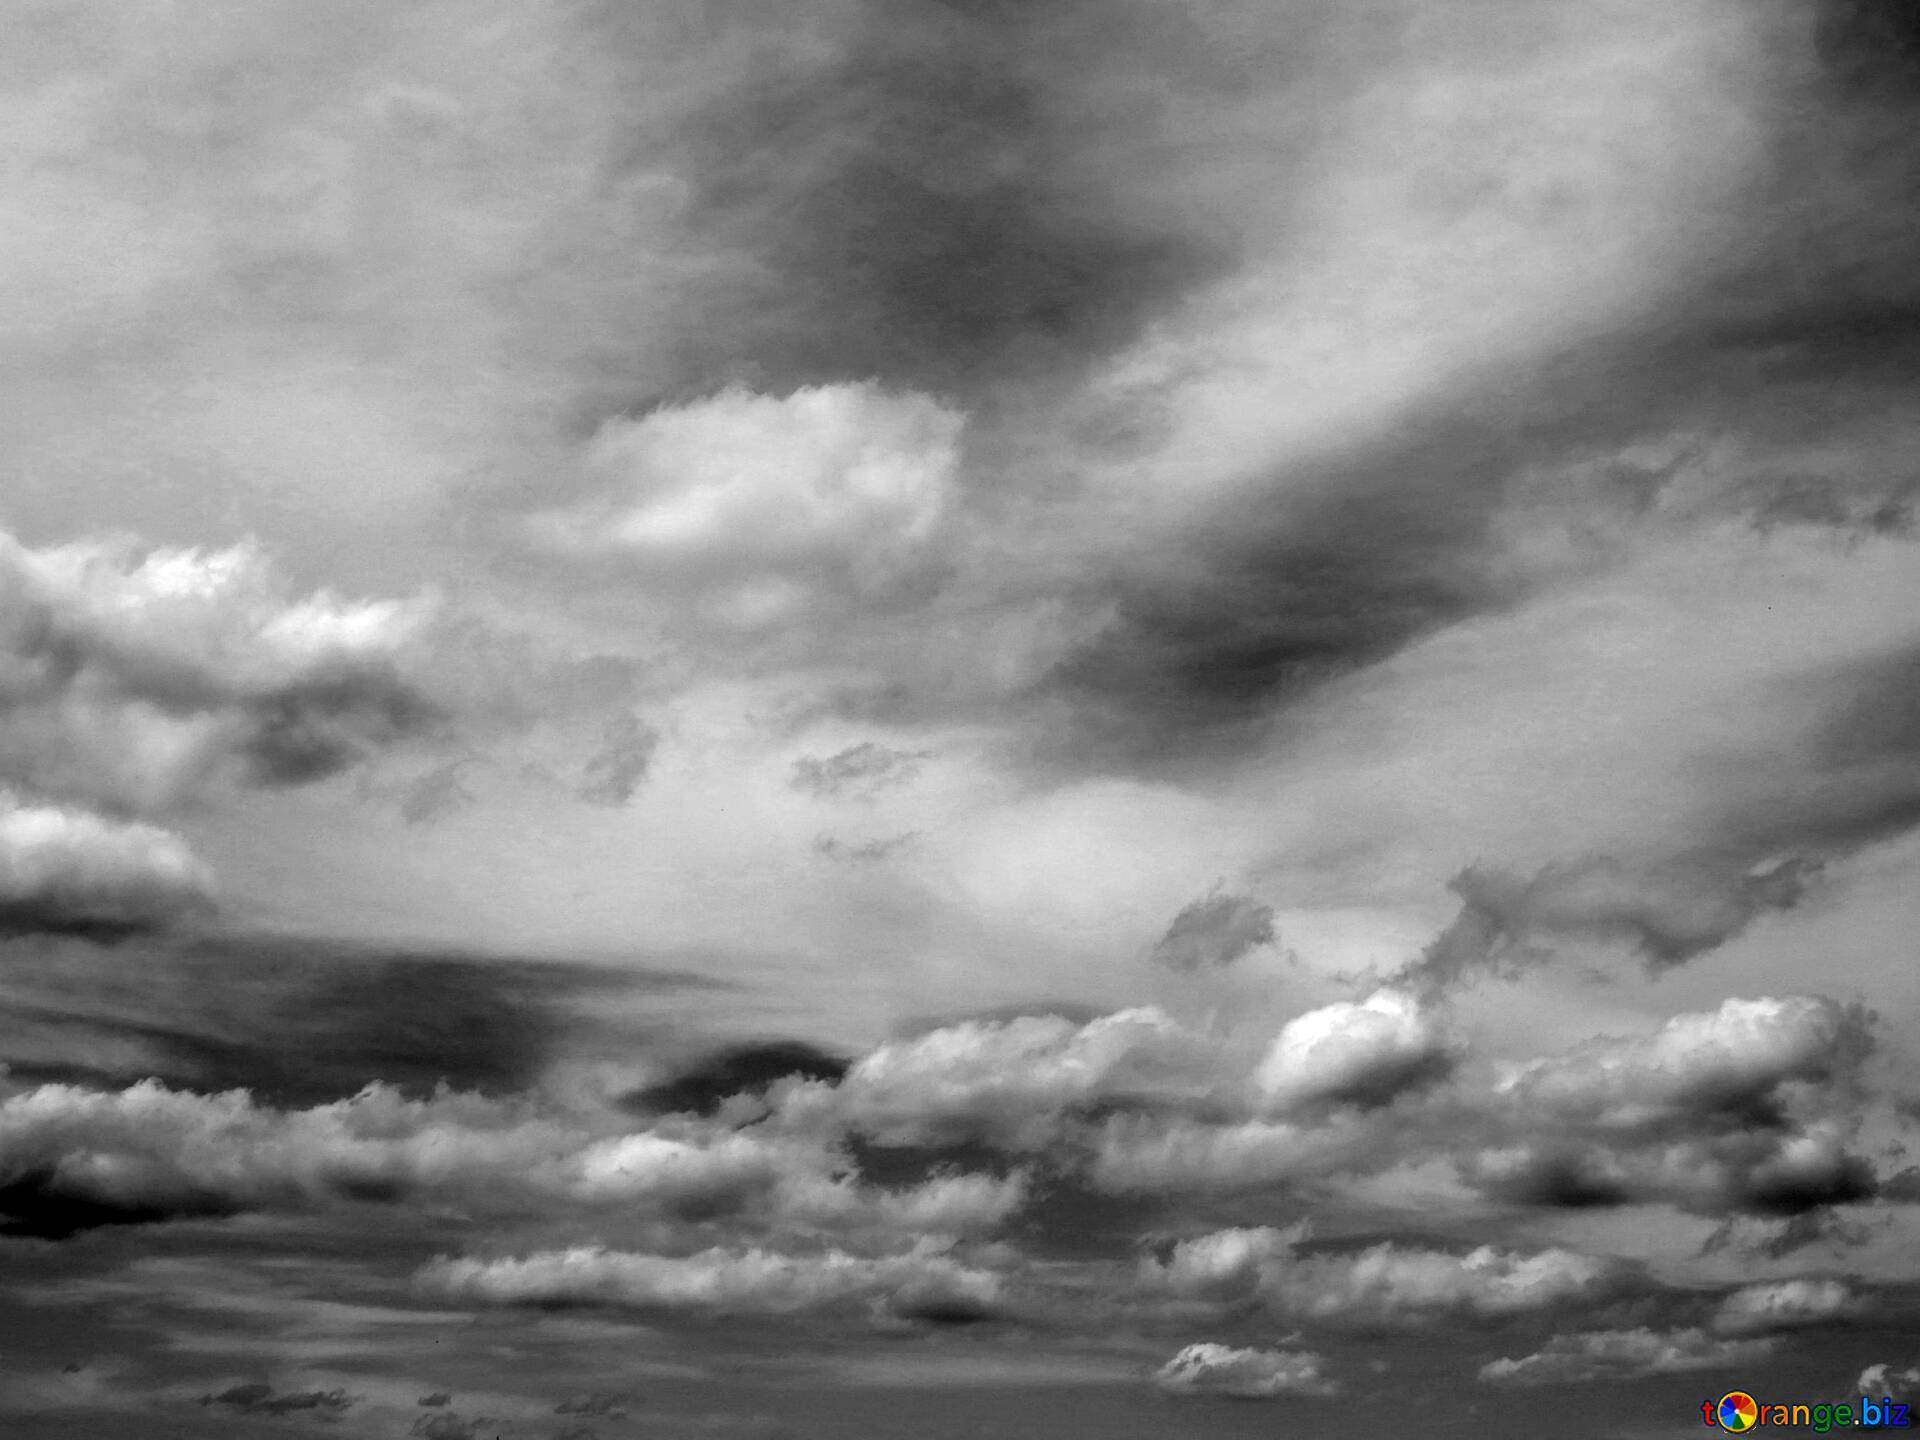 Download free picture Cloudy sky gray image on CC-BY ...